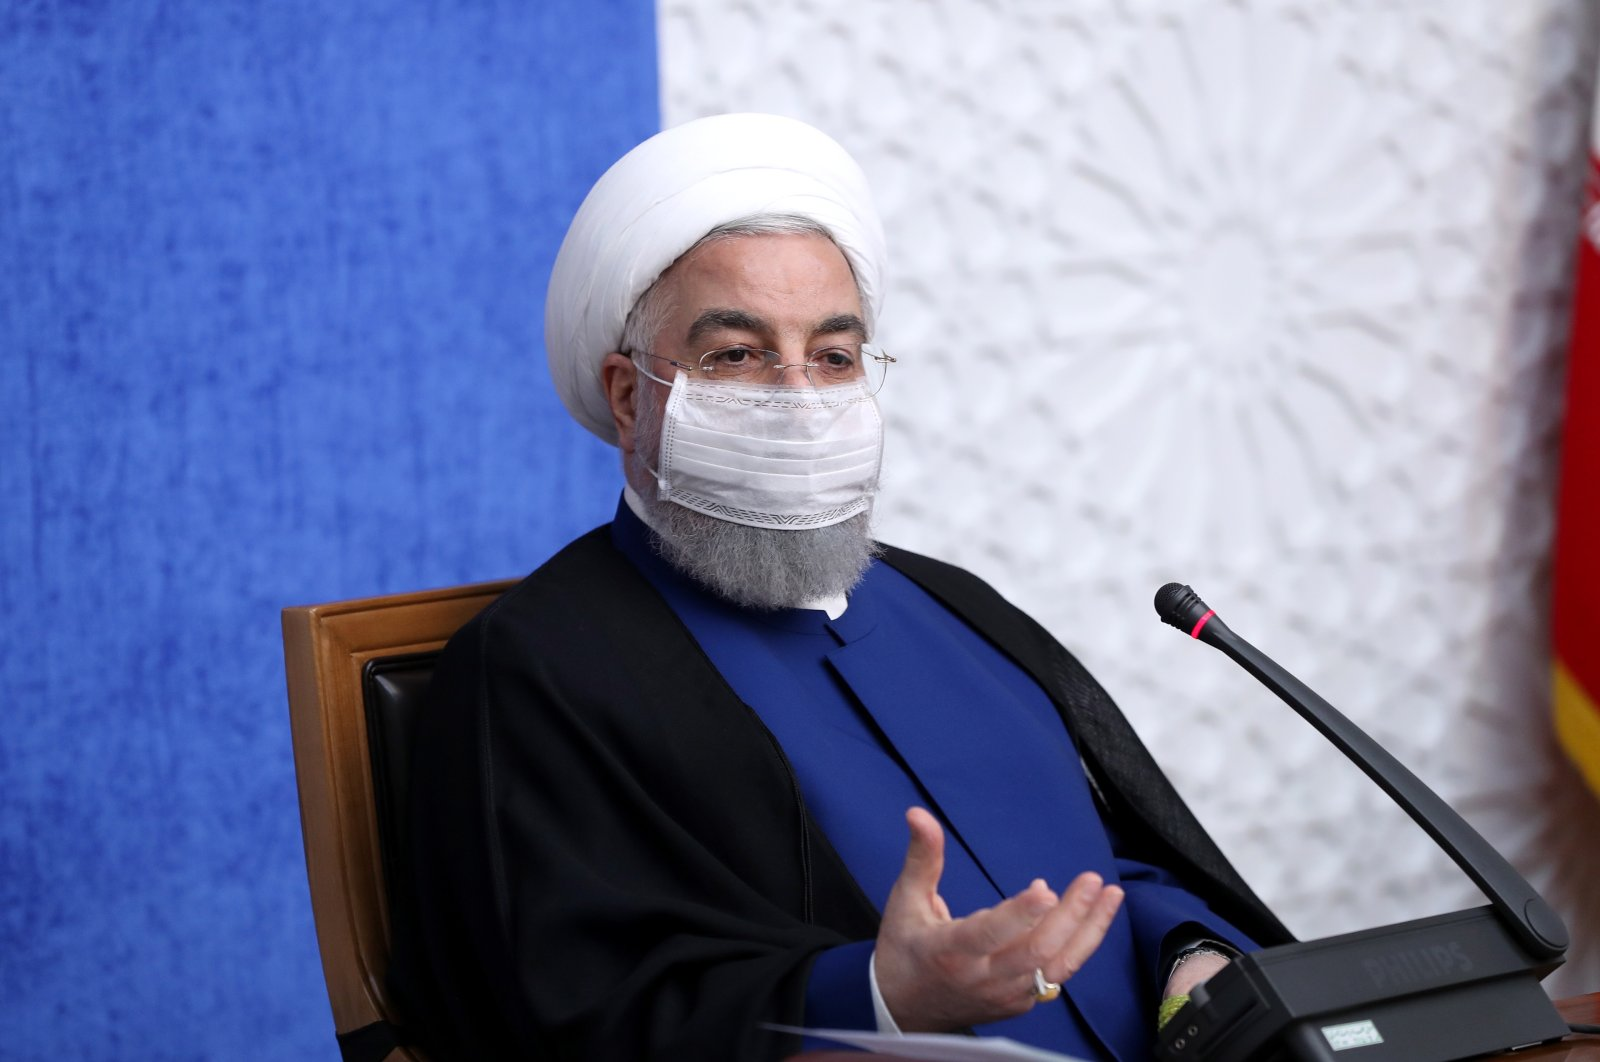 A handout photo made available by the presidential office shows Iranian President Hassan Rouhani speaking during an economic government meeting in Tehran, Iran, Nov. 8, 2020. (EPA Photo)